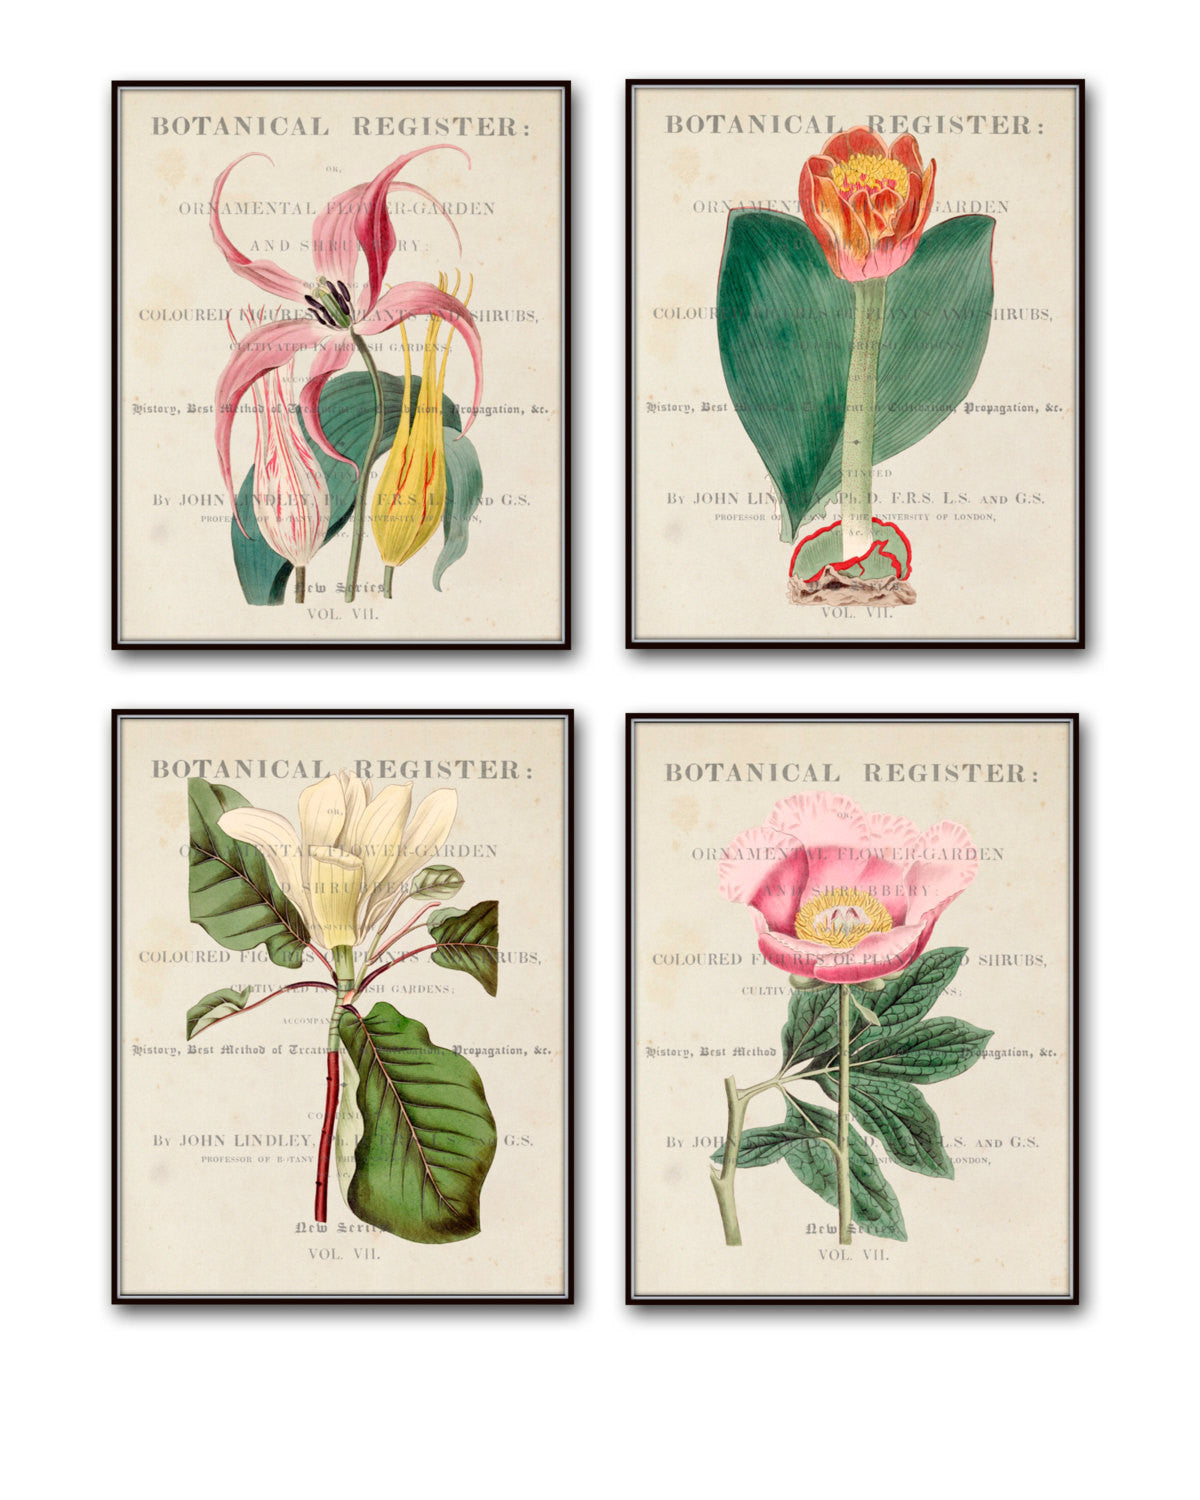 Vintage Botanical Print Set No 12 - Giclee Canvas Art Prints - Antique  Botanical Prints - Wall Art - Prints - Posters - Botanical Print Sets